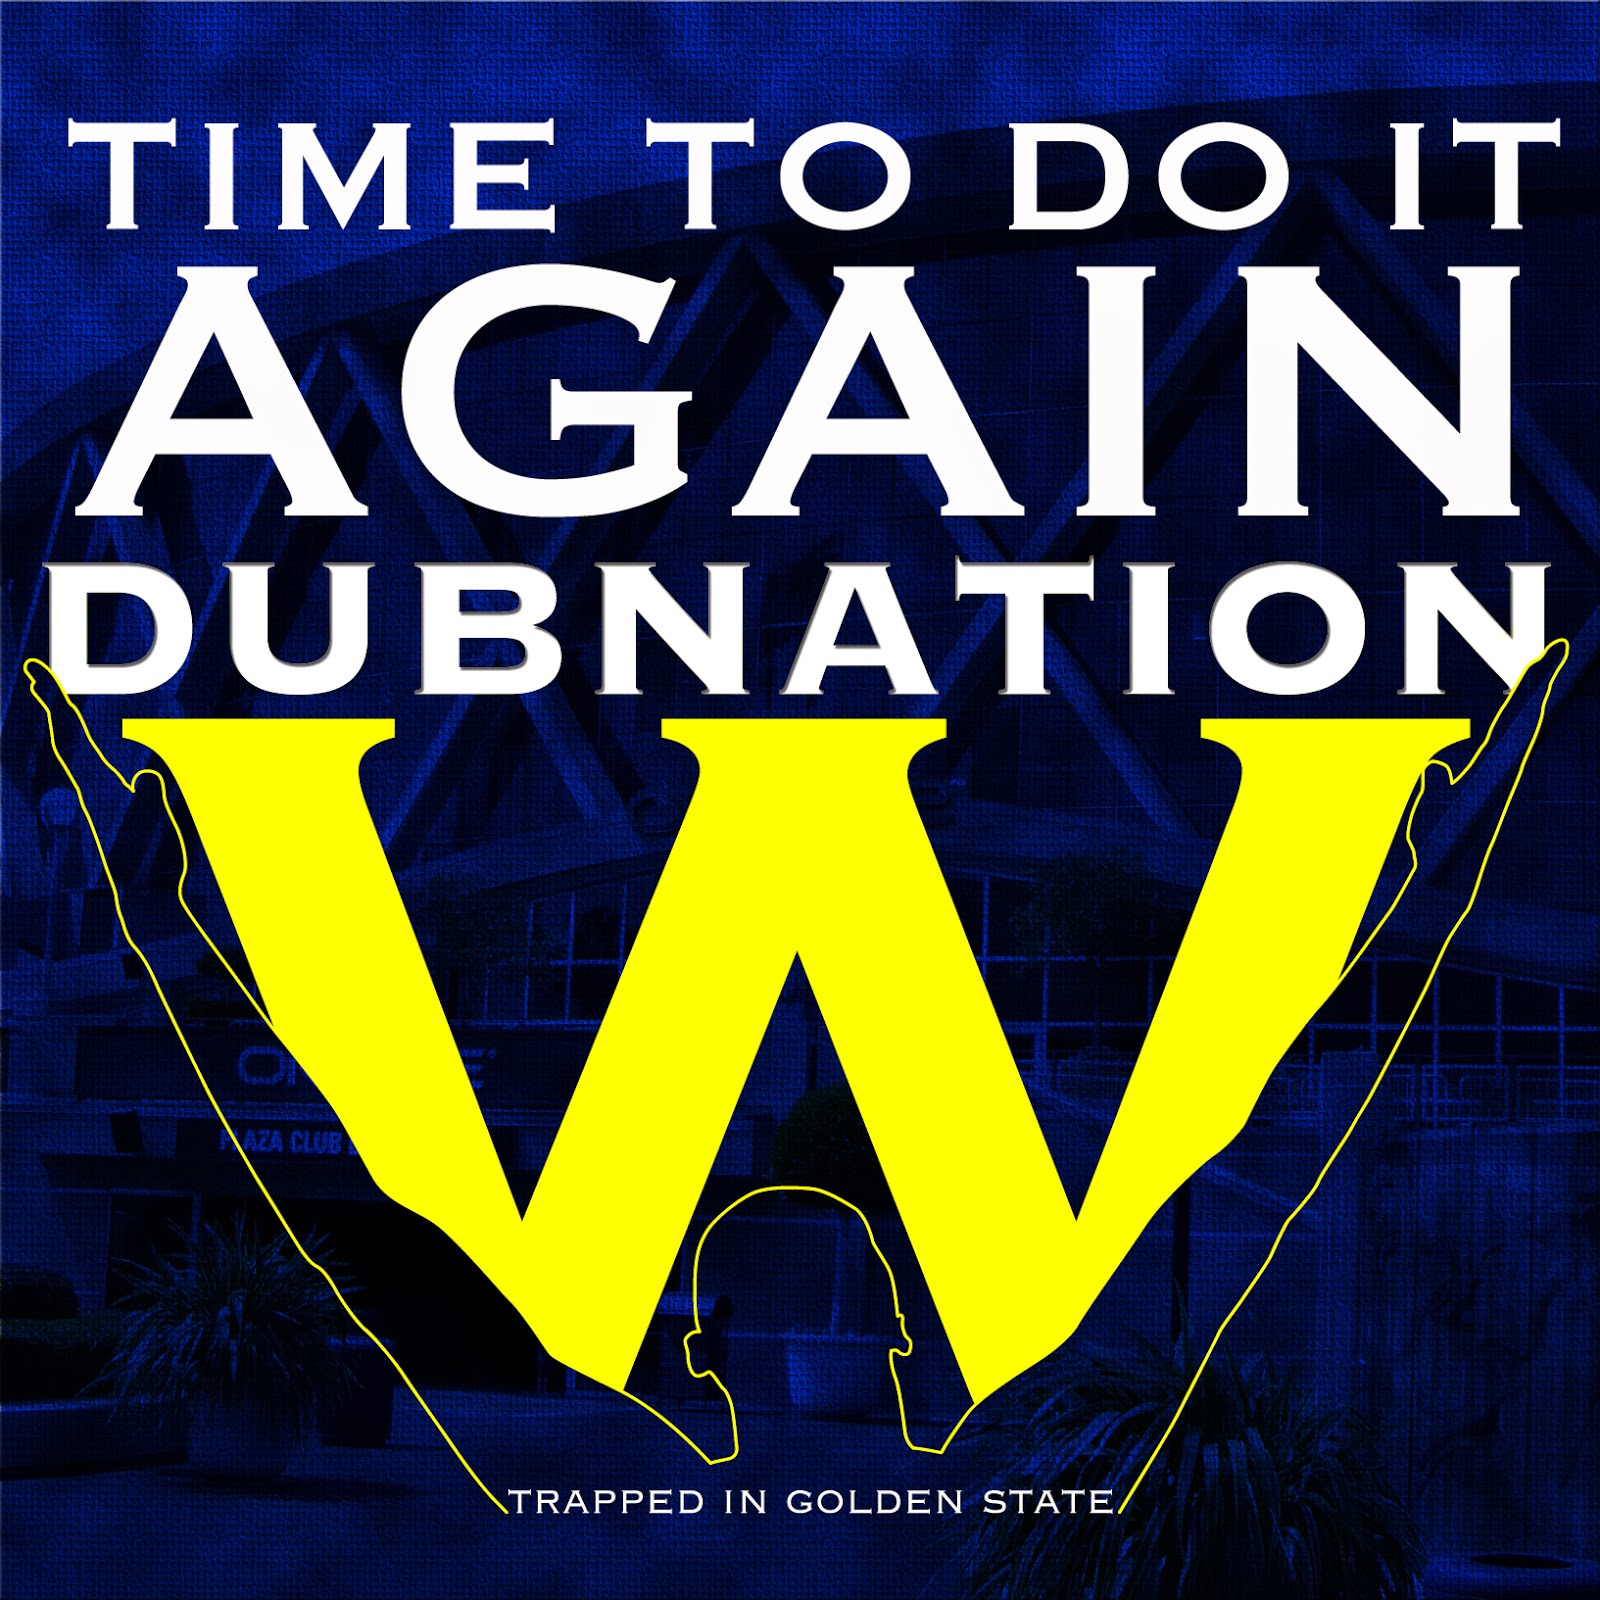 Dub Nation Design Updates For 2013 14 Trapped In Golden